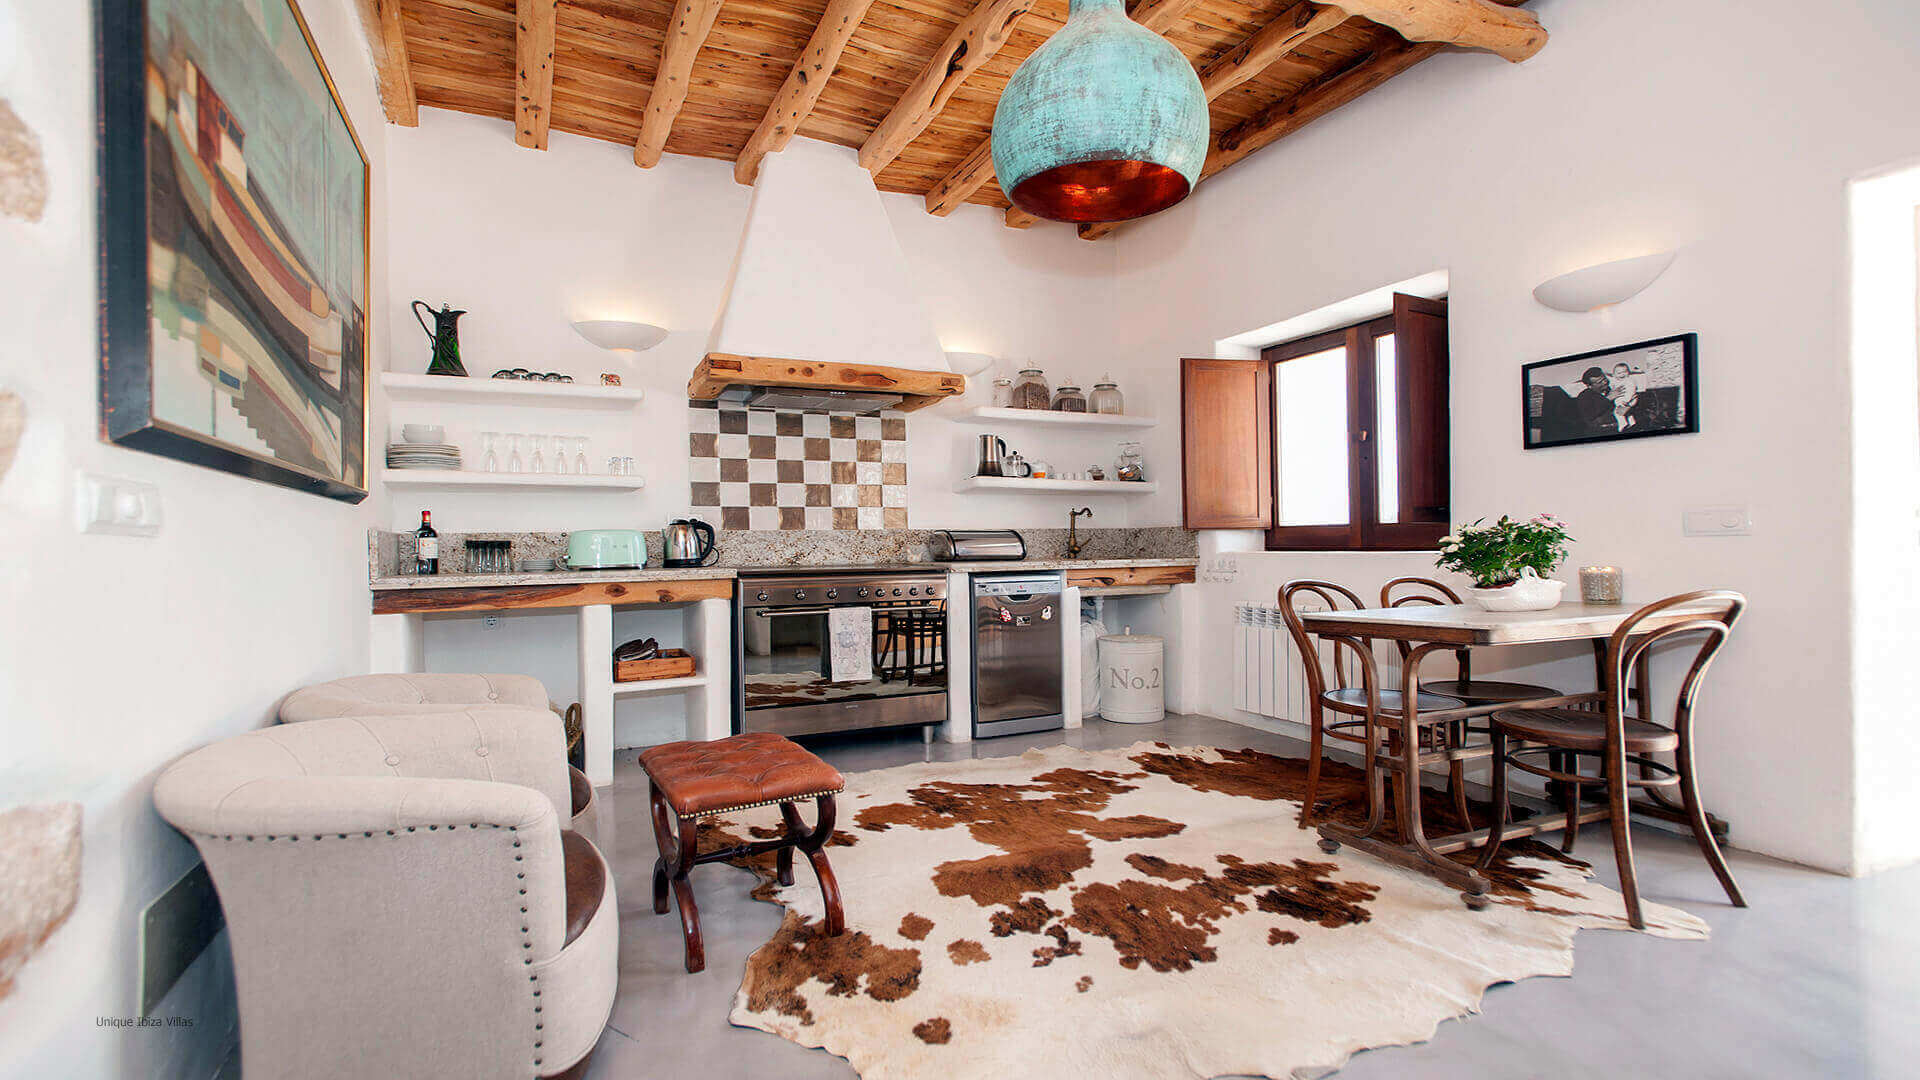 Can Frare Ibiza 41 Bedroom 2 Kitchenette